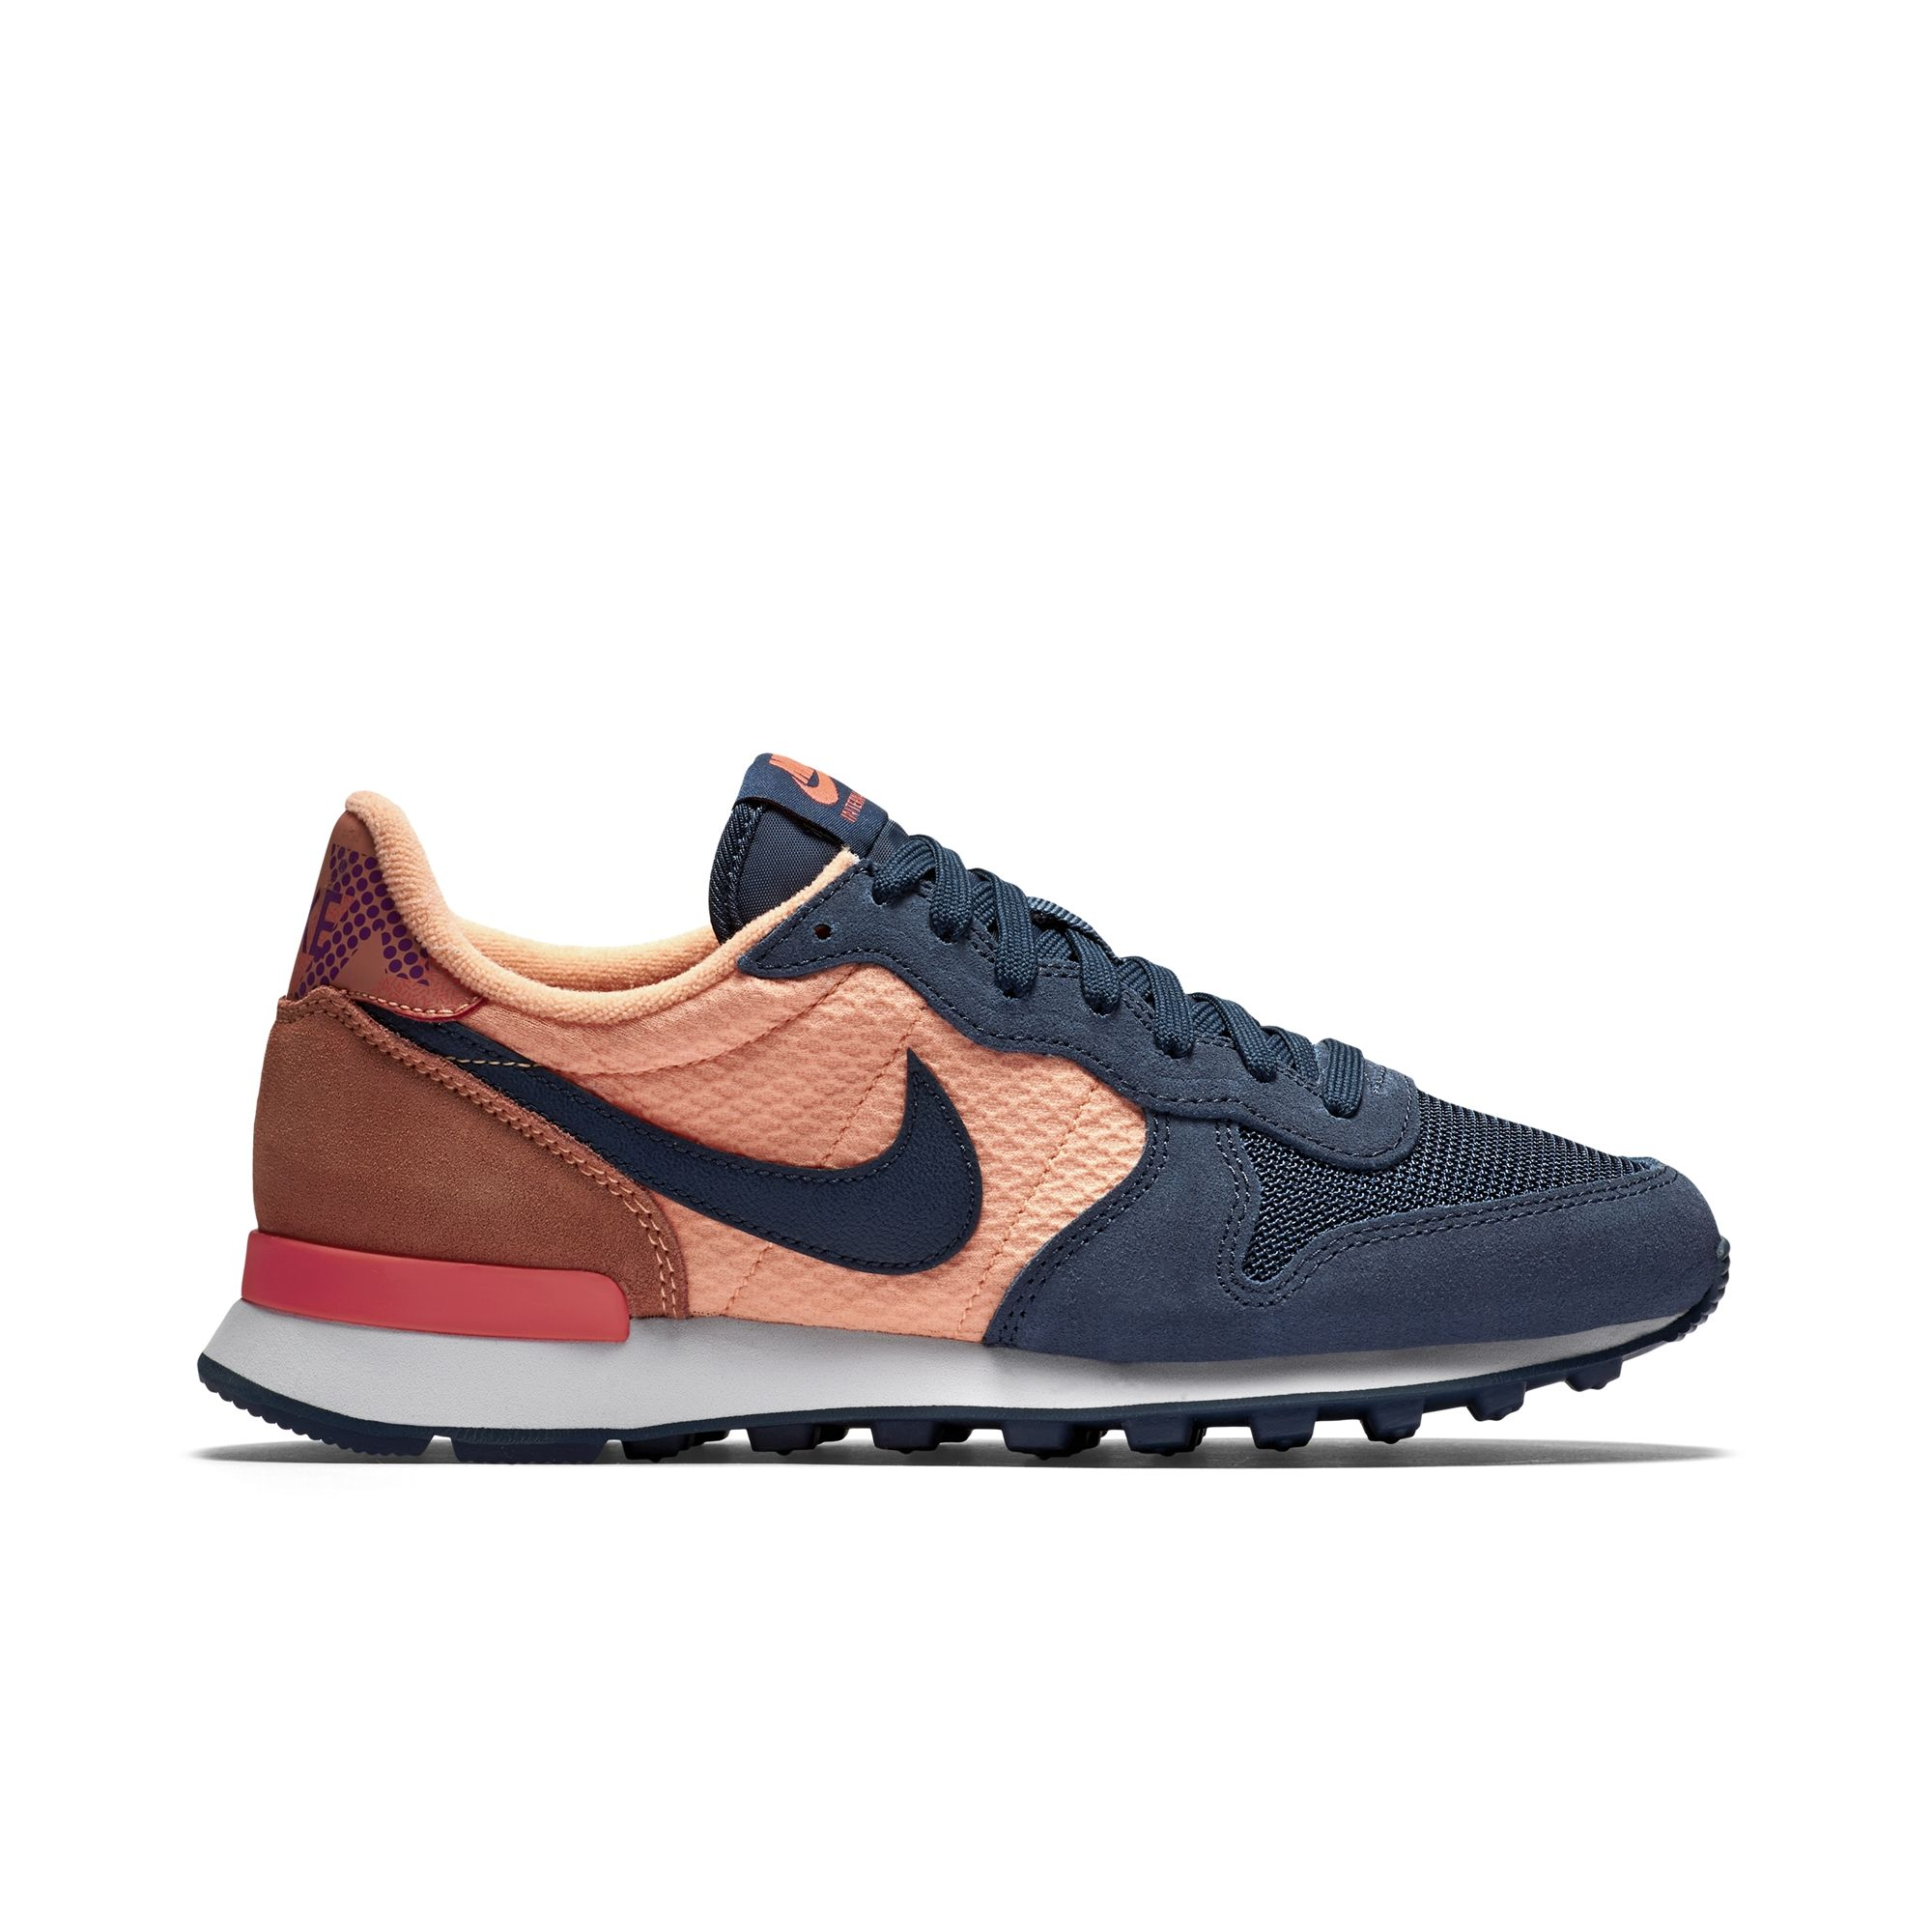 finest selection b5828 8d683 Tênis Nike Internationalist Print Feminino - Nike no Nike.com.br